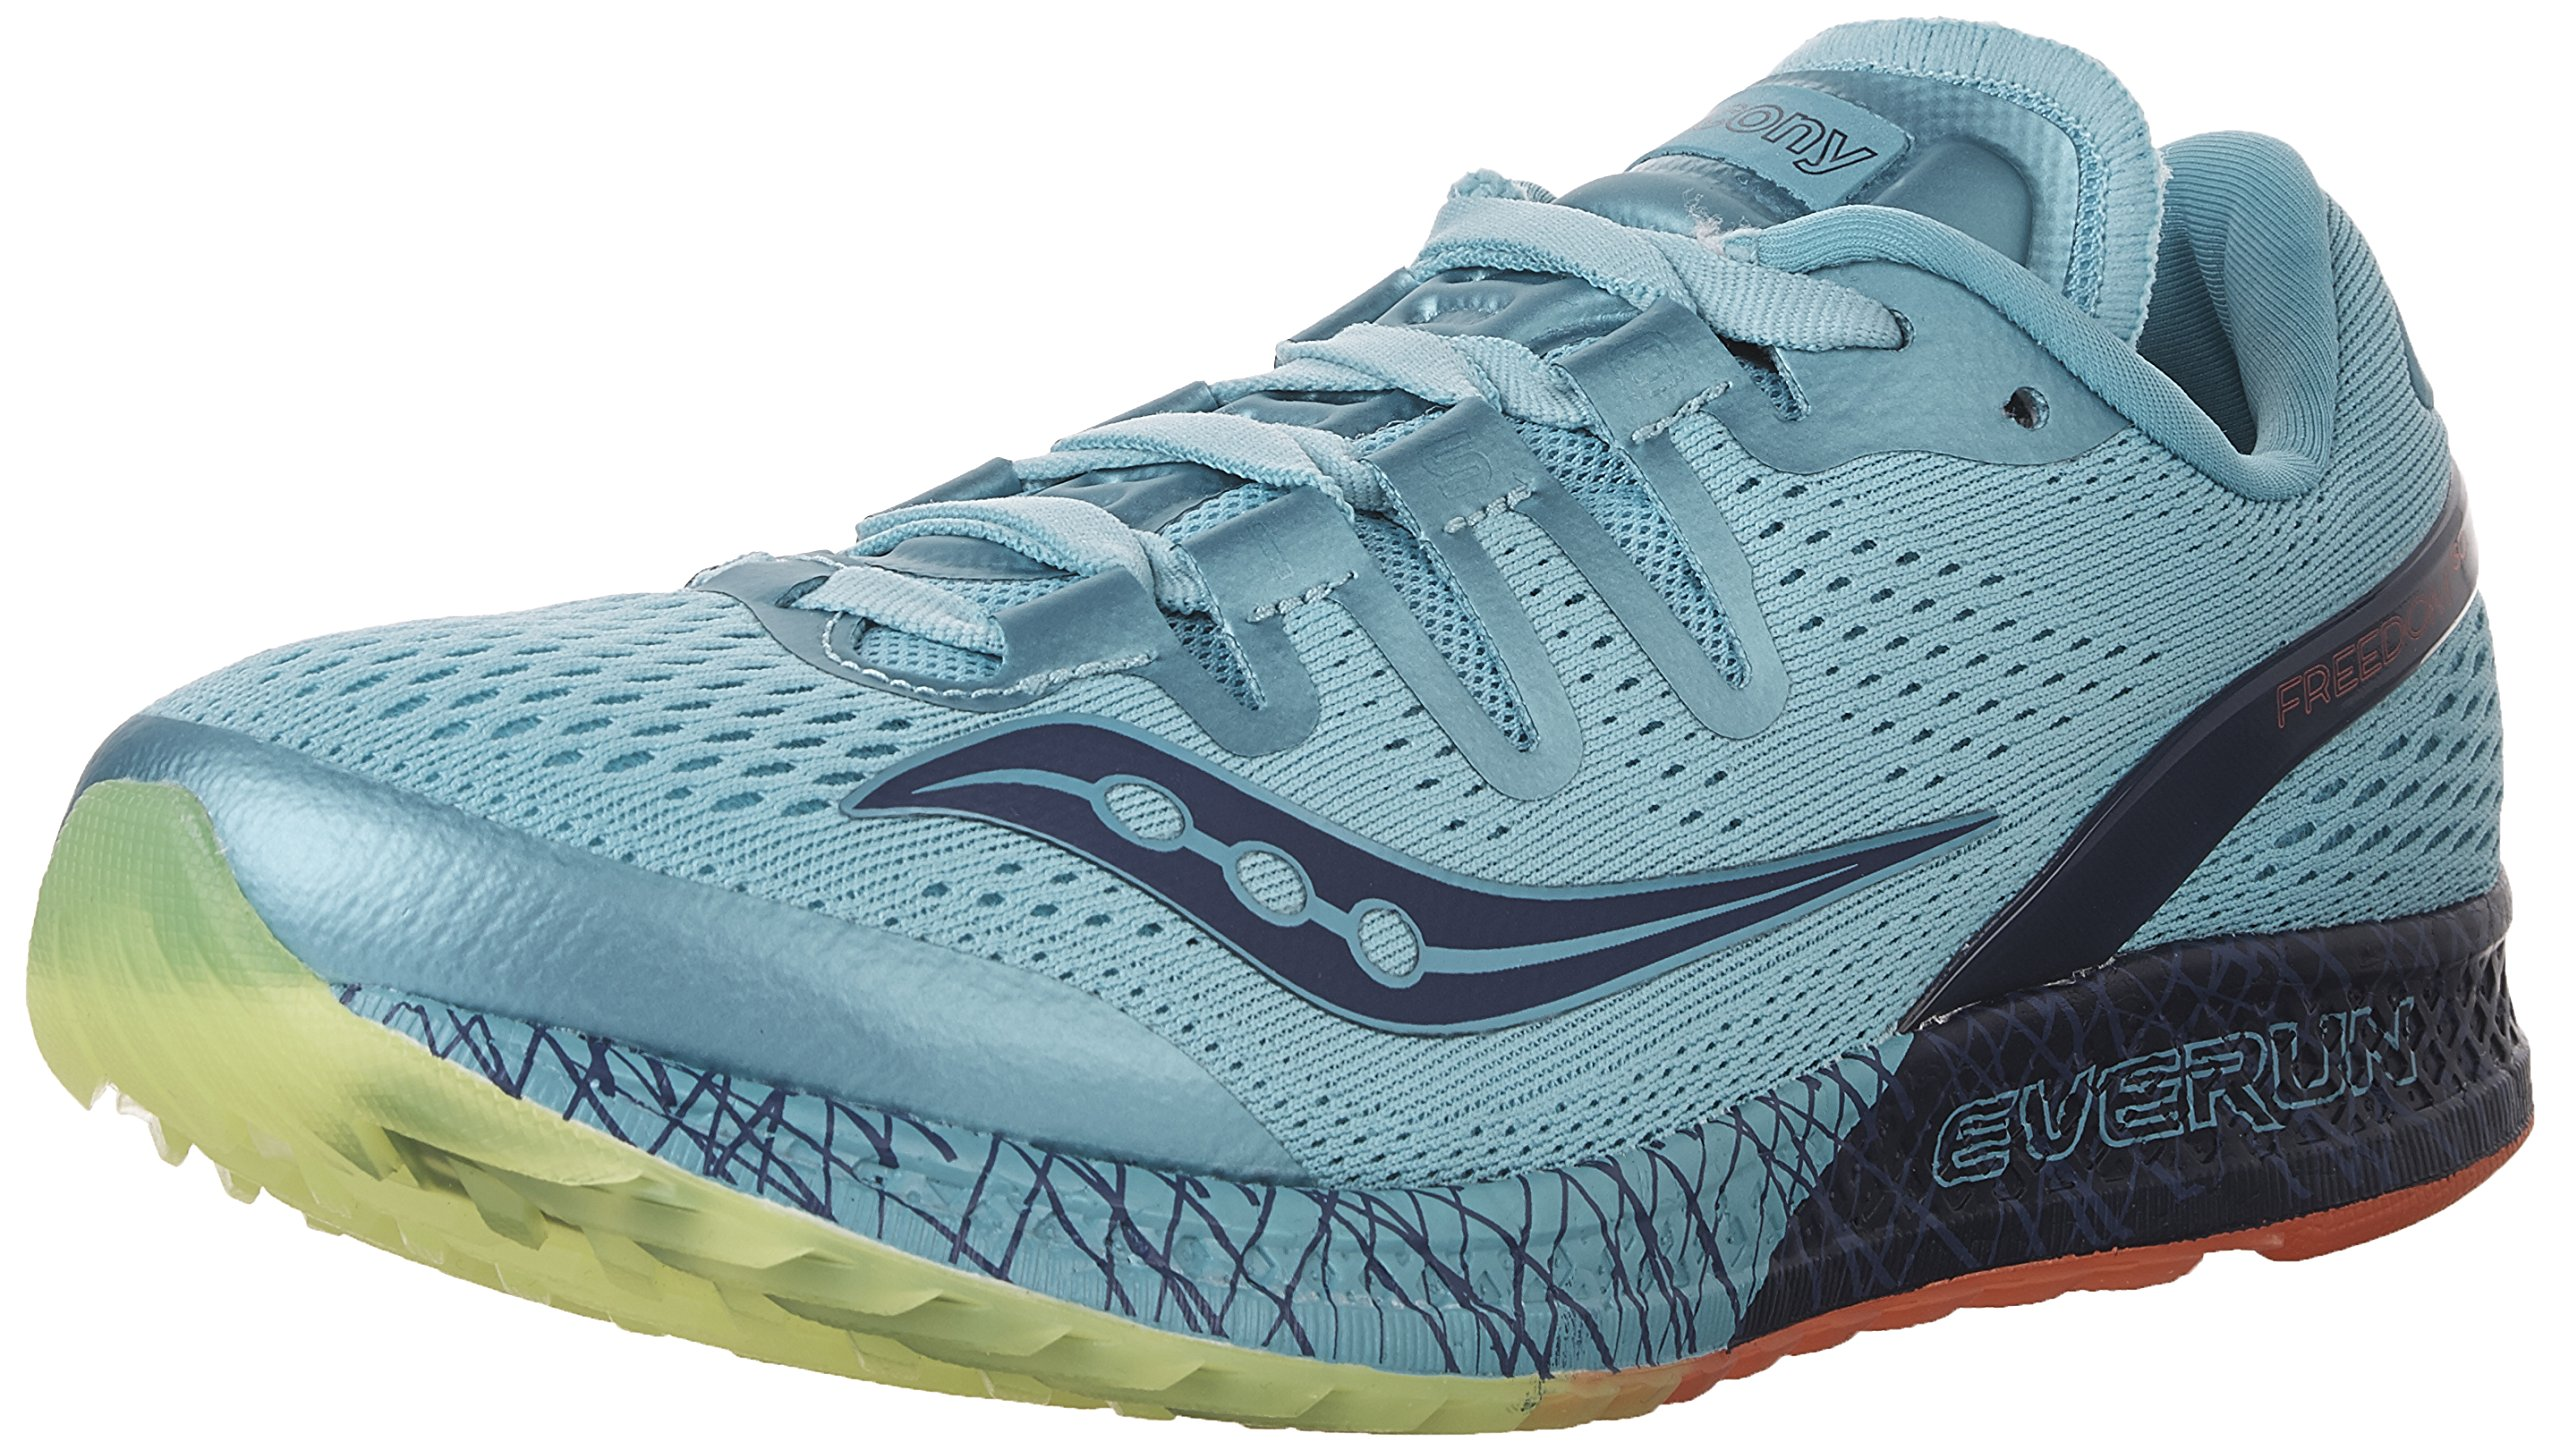 Saucony Women's Freedom ISO Running Shoe, Blue/Citron, 8.5 B(M) US